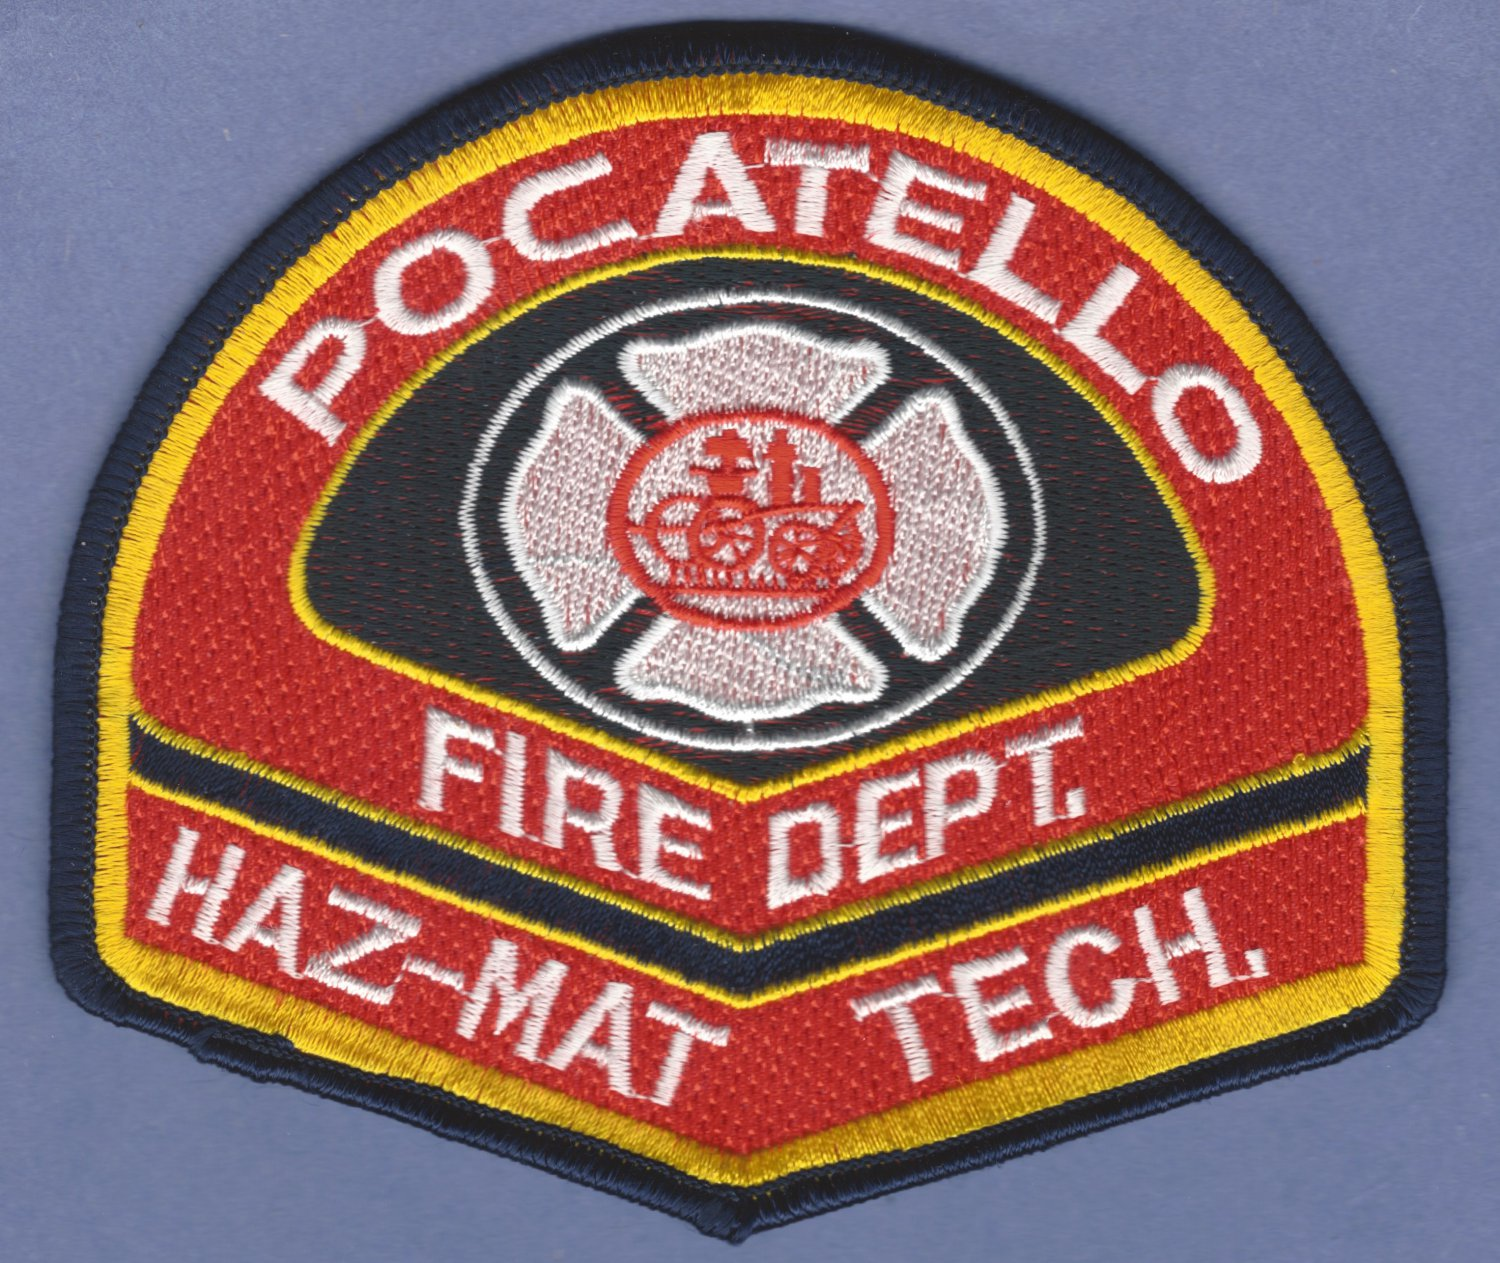 POCATELLO IDAHO FIRE RESCUE HAZ MAT TECHNICIAN PATCH